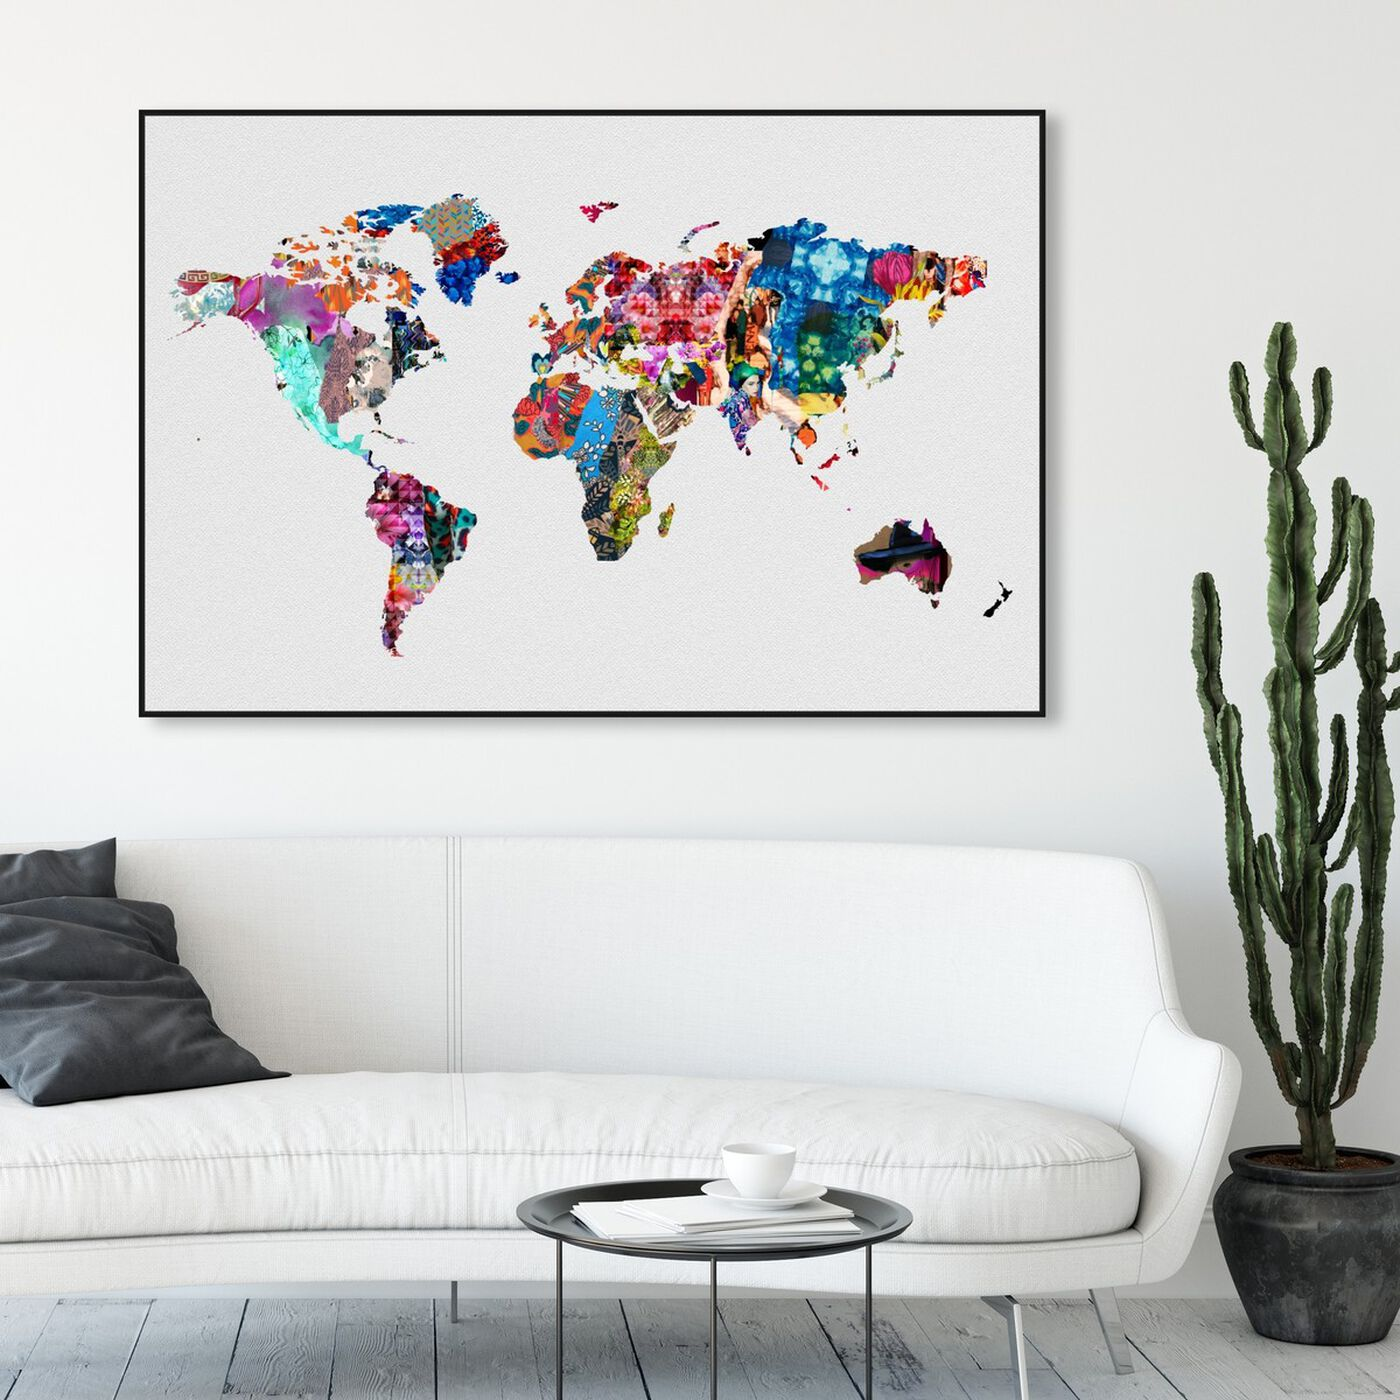 Hanging view of Mapamundi featuring maps and flags and world maps art.